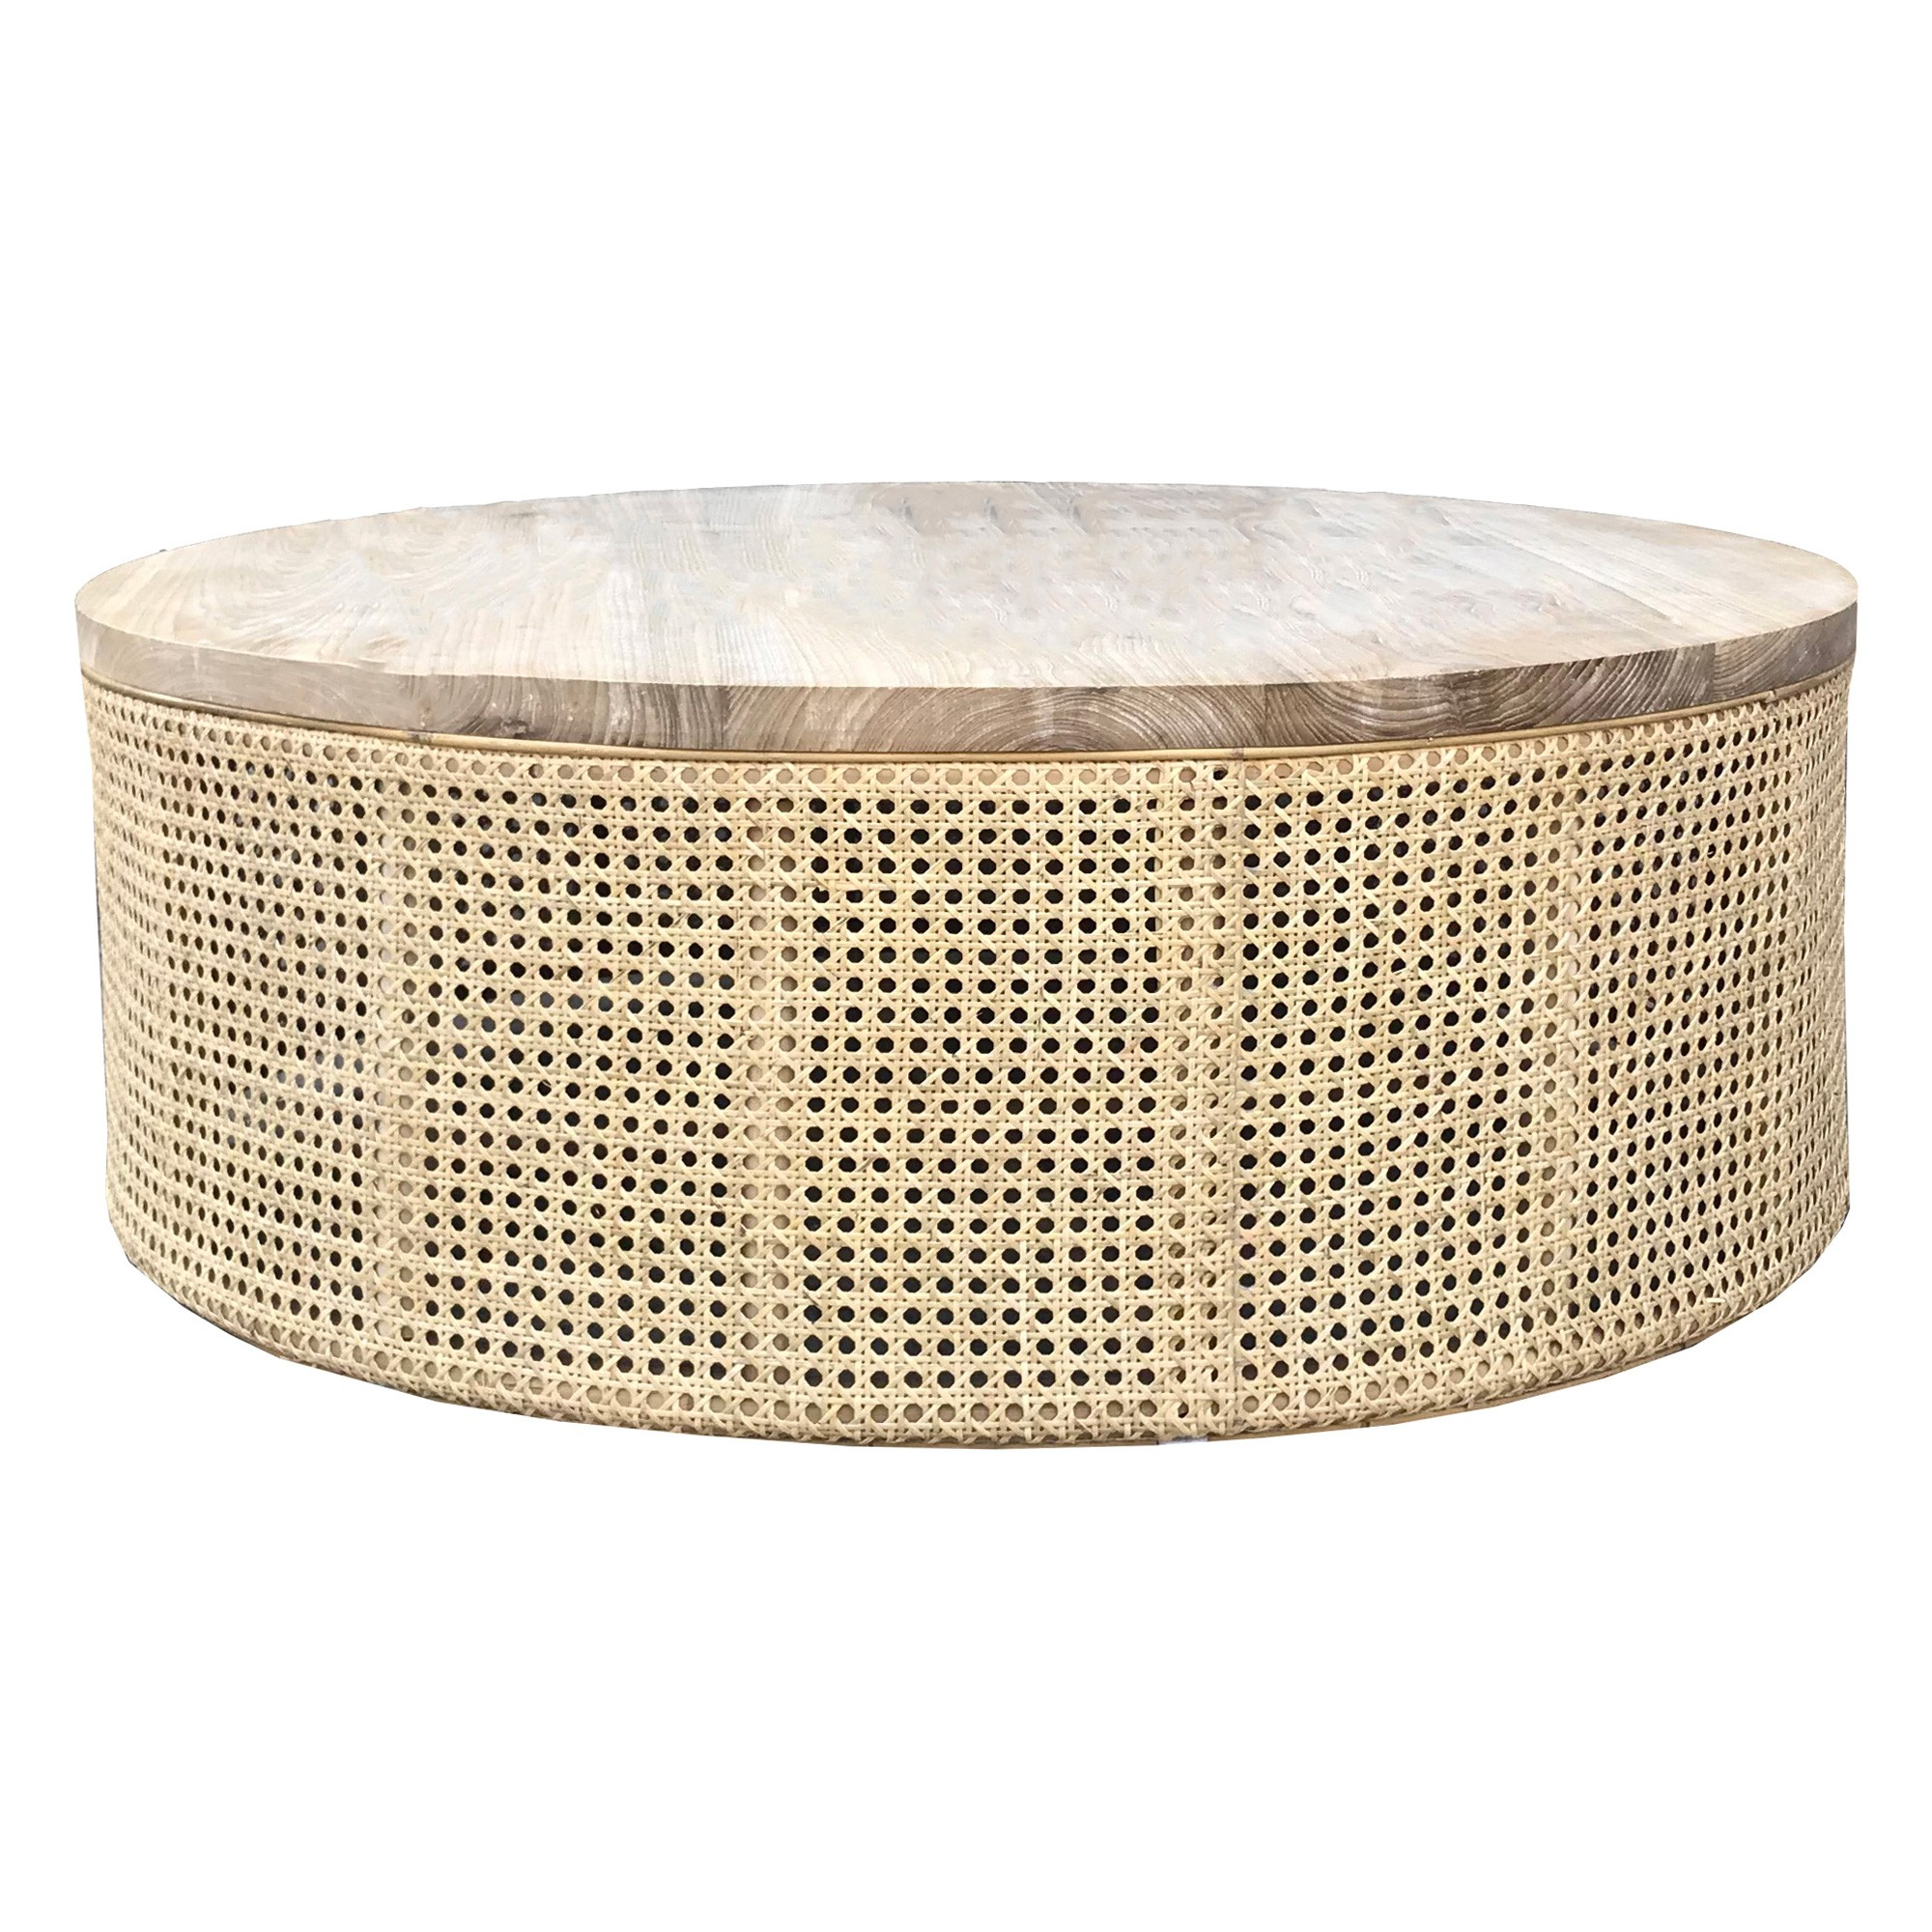 Zoe Solid Sunkai Wood & Rattan Round Coffee Table, 90cm